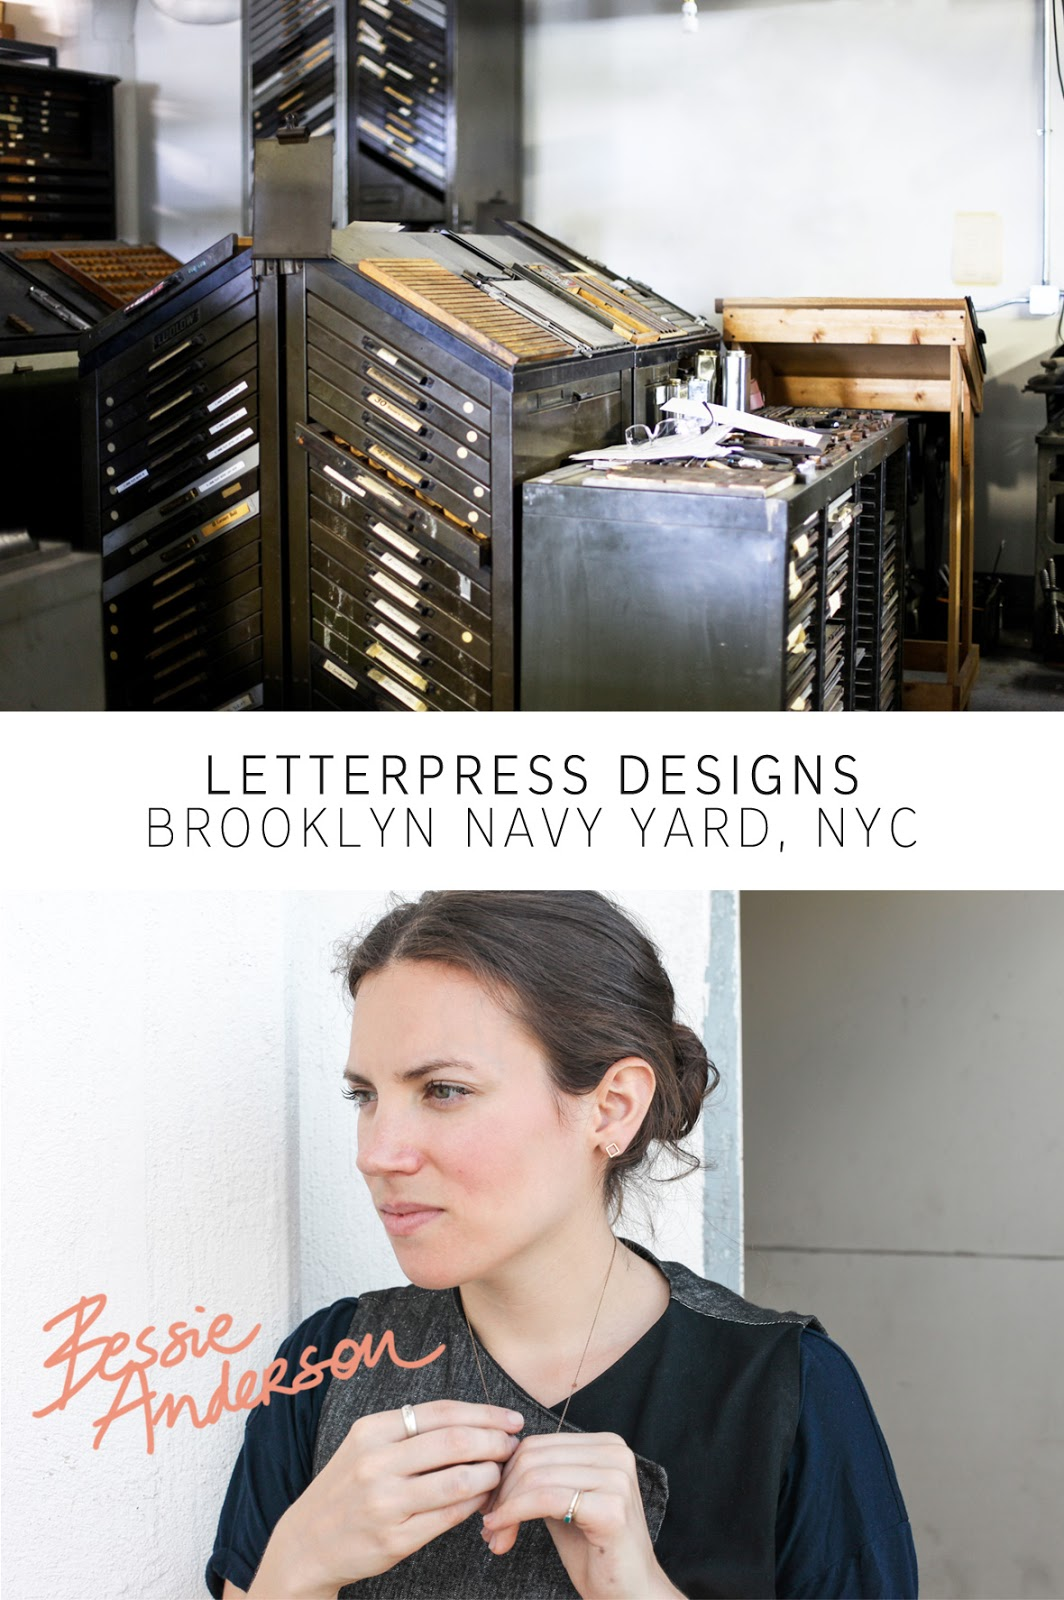 b.impressed bessie anderson one more good one onemoregoodone letterpress designer antique printing press brooklyn navy yard bespoke stationary